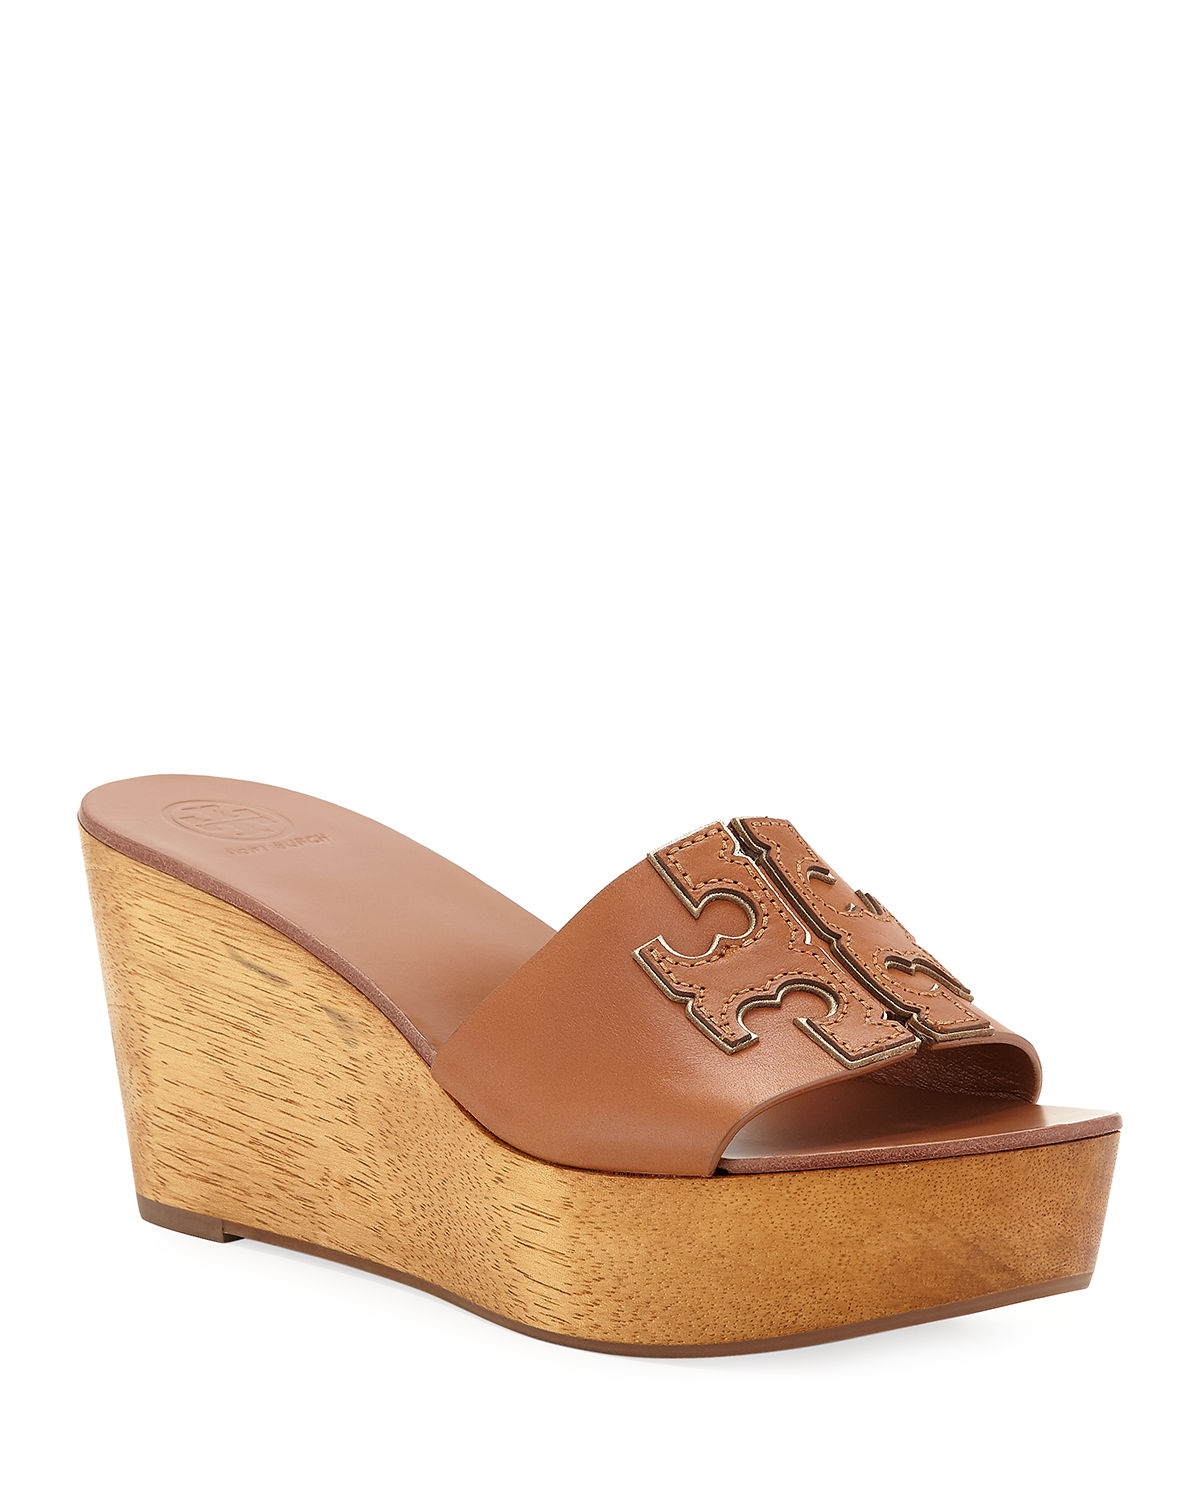 ab3623ad81ba Tory Burch Ines 80mm Wedge Slide Sandals